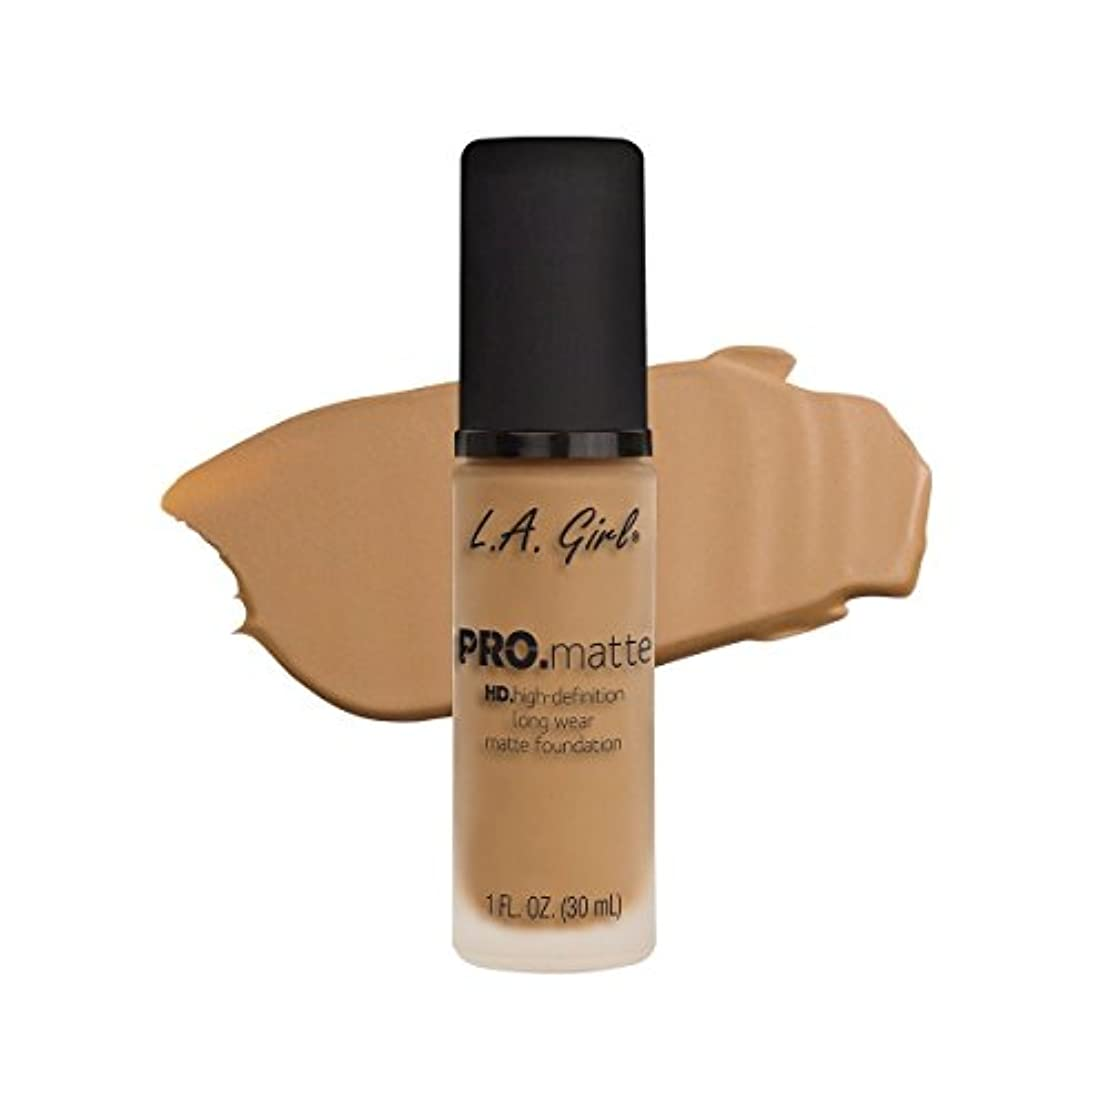 過度に練習上院議員(3 Pack) L.A. GIRL Pro Matte Foundation - Medium Beige (並行輸入品)